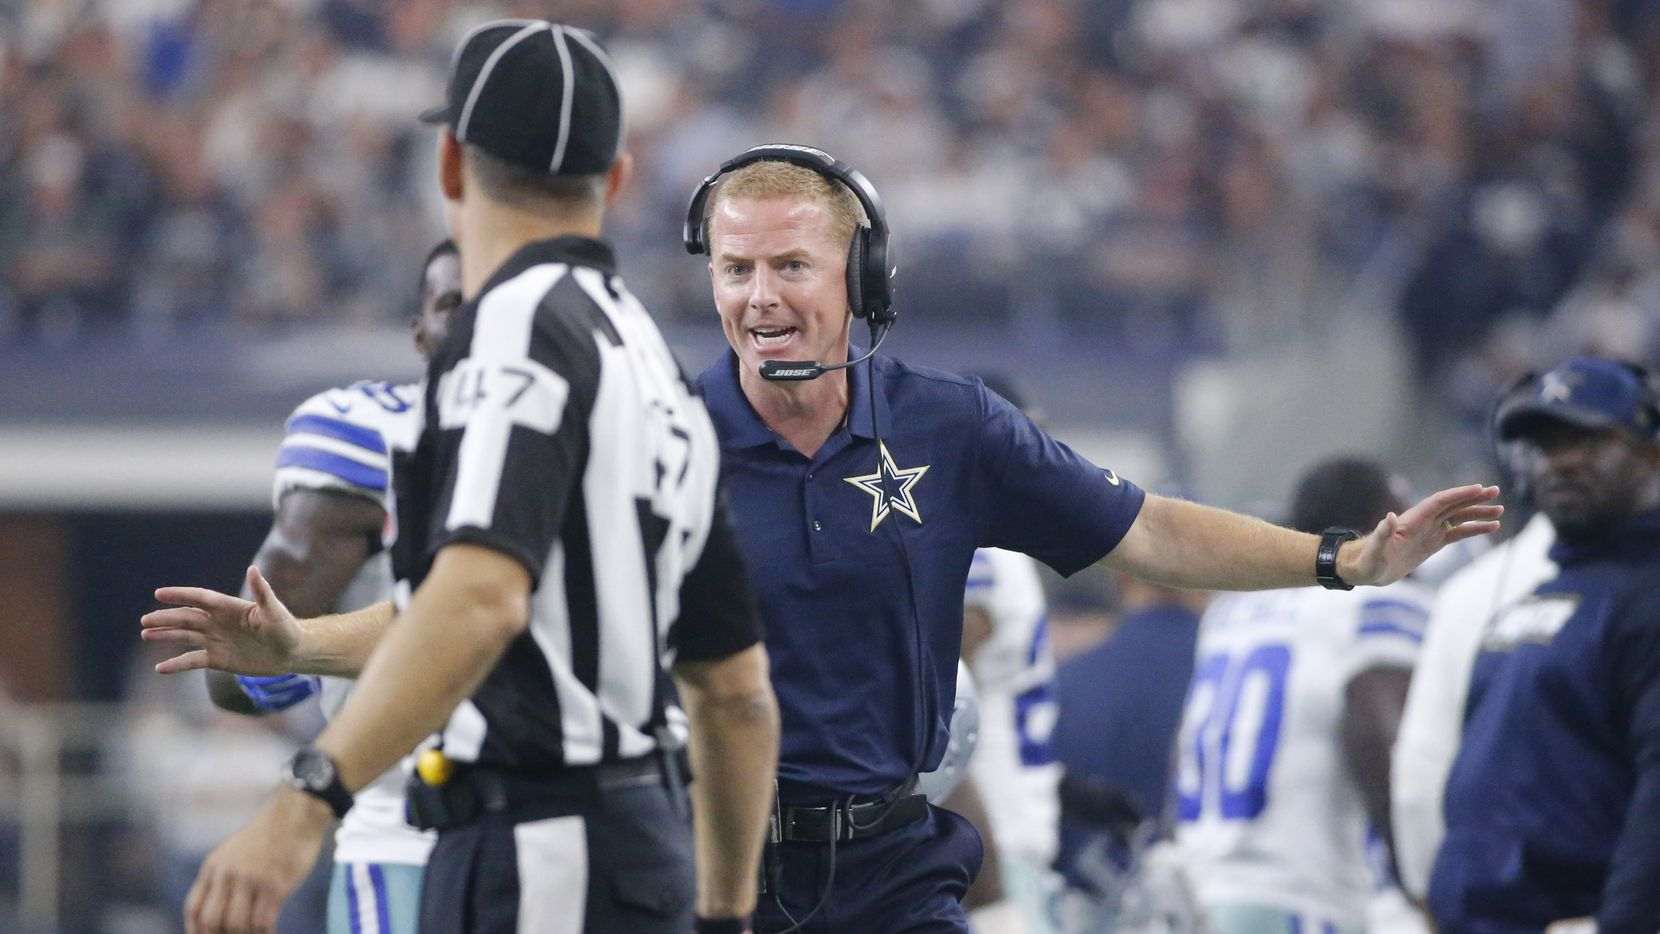 Dallas head coach Jason Garrett talks with an official at the end of the second quarter during the Seattle Seahawks vs. the Dallas Cowboys NFL football game at AT&T Stadium in Arlington on Sunday, November 1, 2015. (Louis DeLuca/The Dallas Morning News)